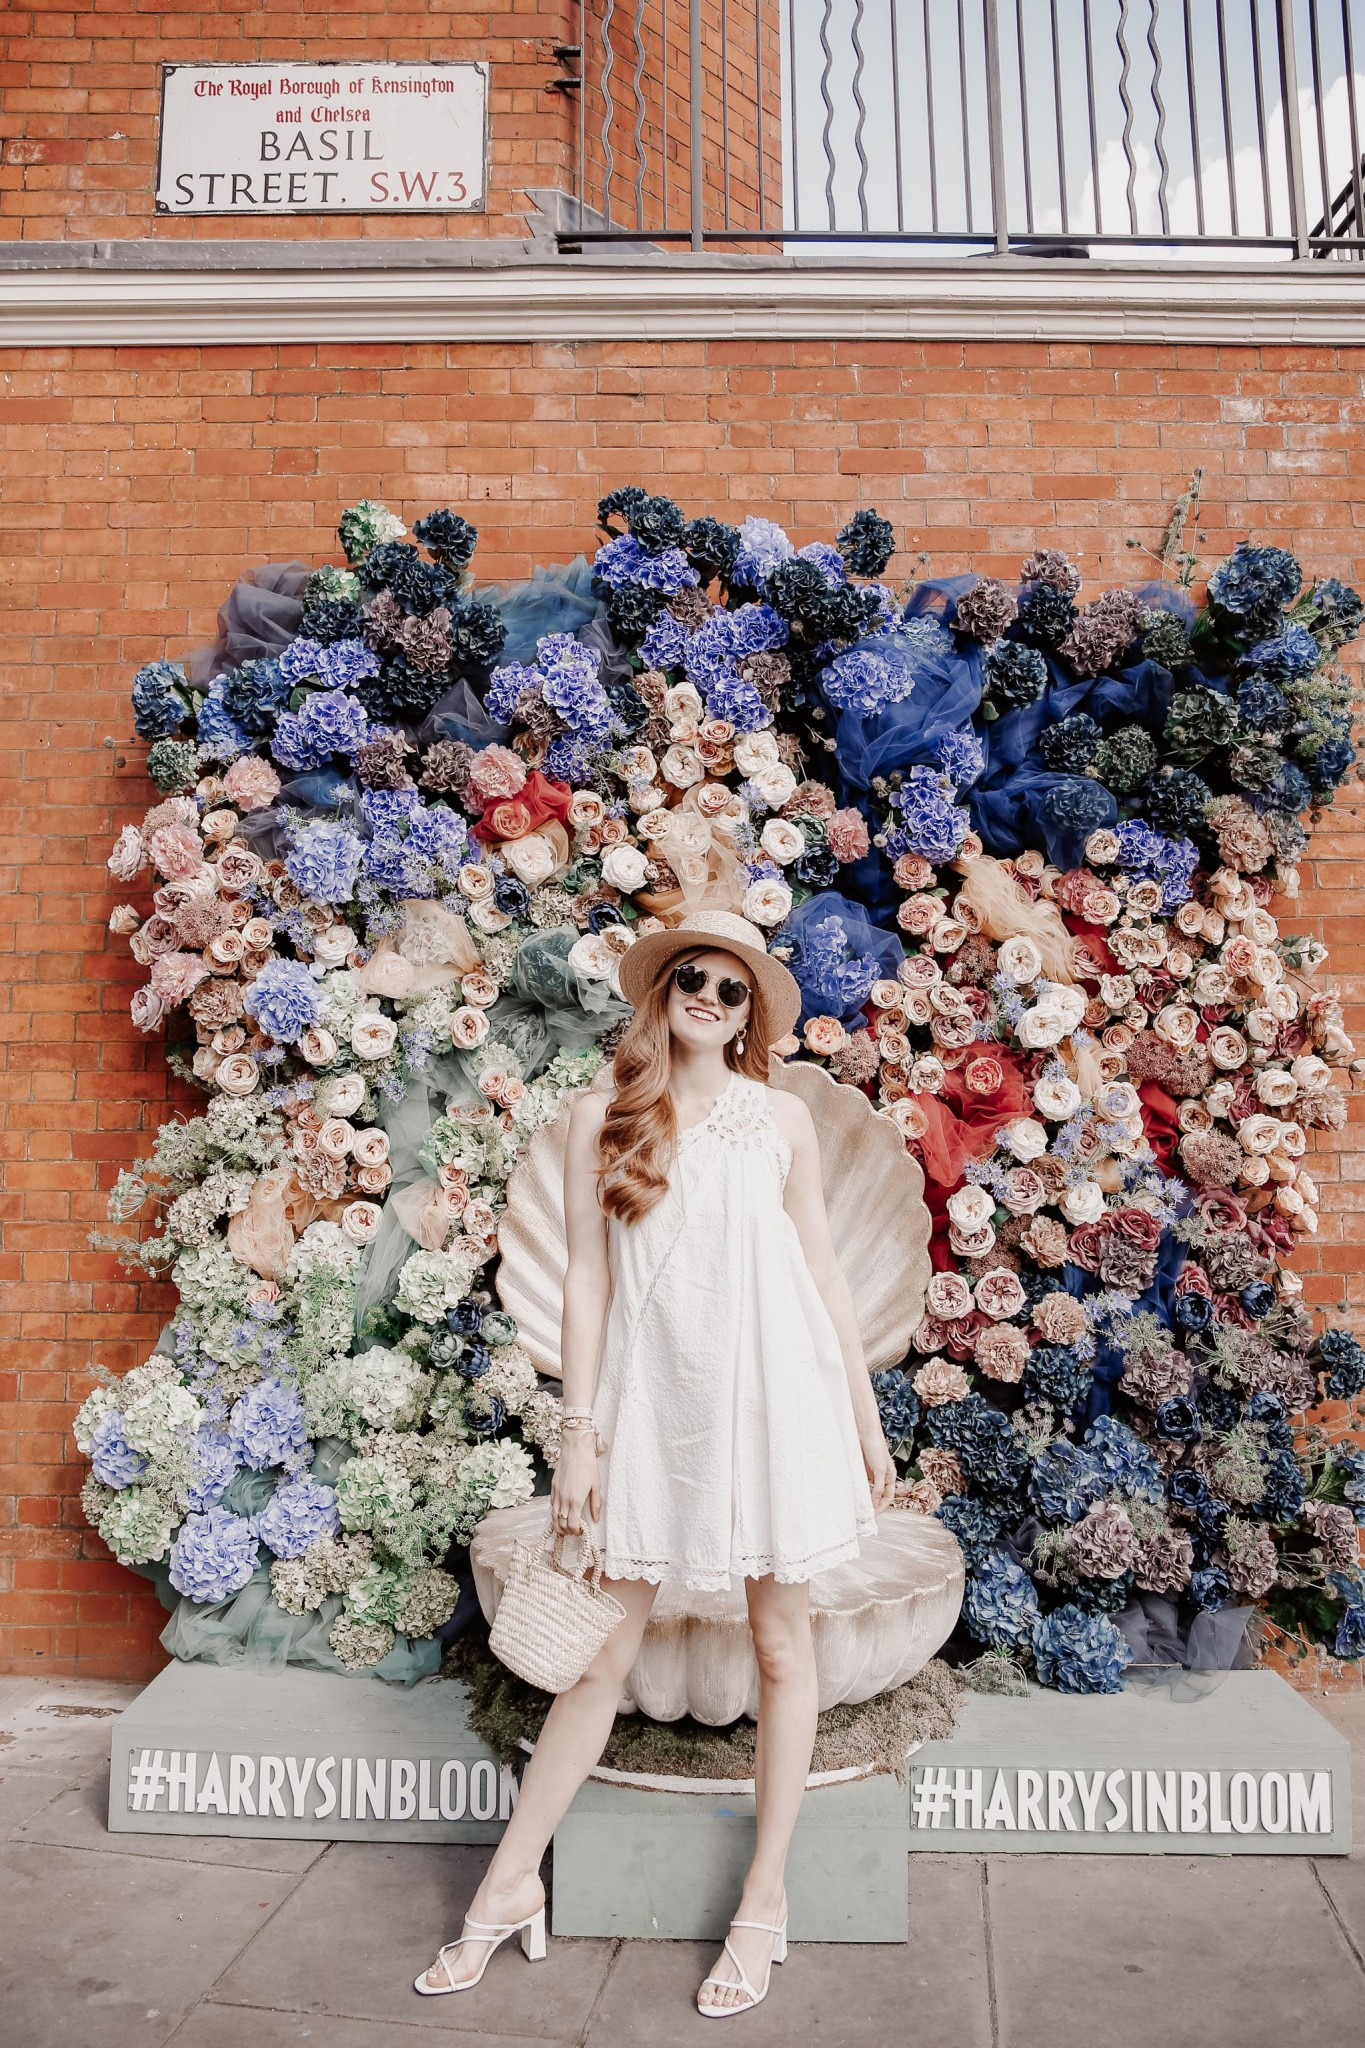 Lifestyle blogger Mollie Moores shares her favorite white dresses for summer | LWD: The Free People Little White Dress by popular London fashion blogger, Mollie Moore: image of a woman standing in front of a floral backdrop wearing a Free People Billie Battenburg One-Shoulder Dress.